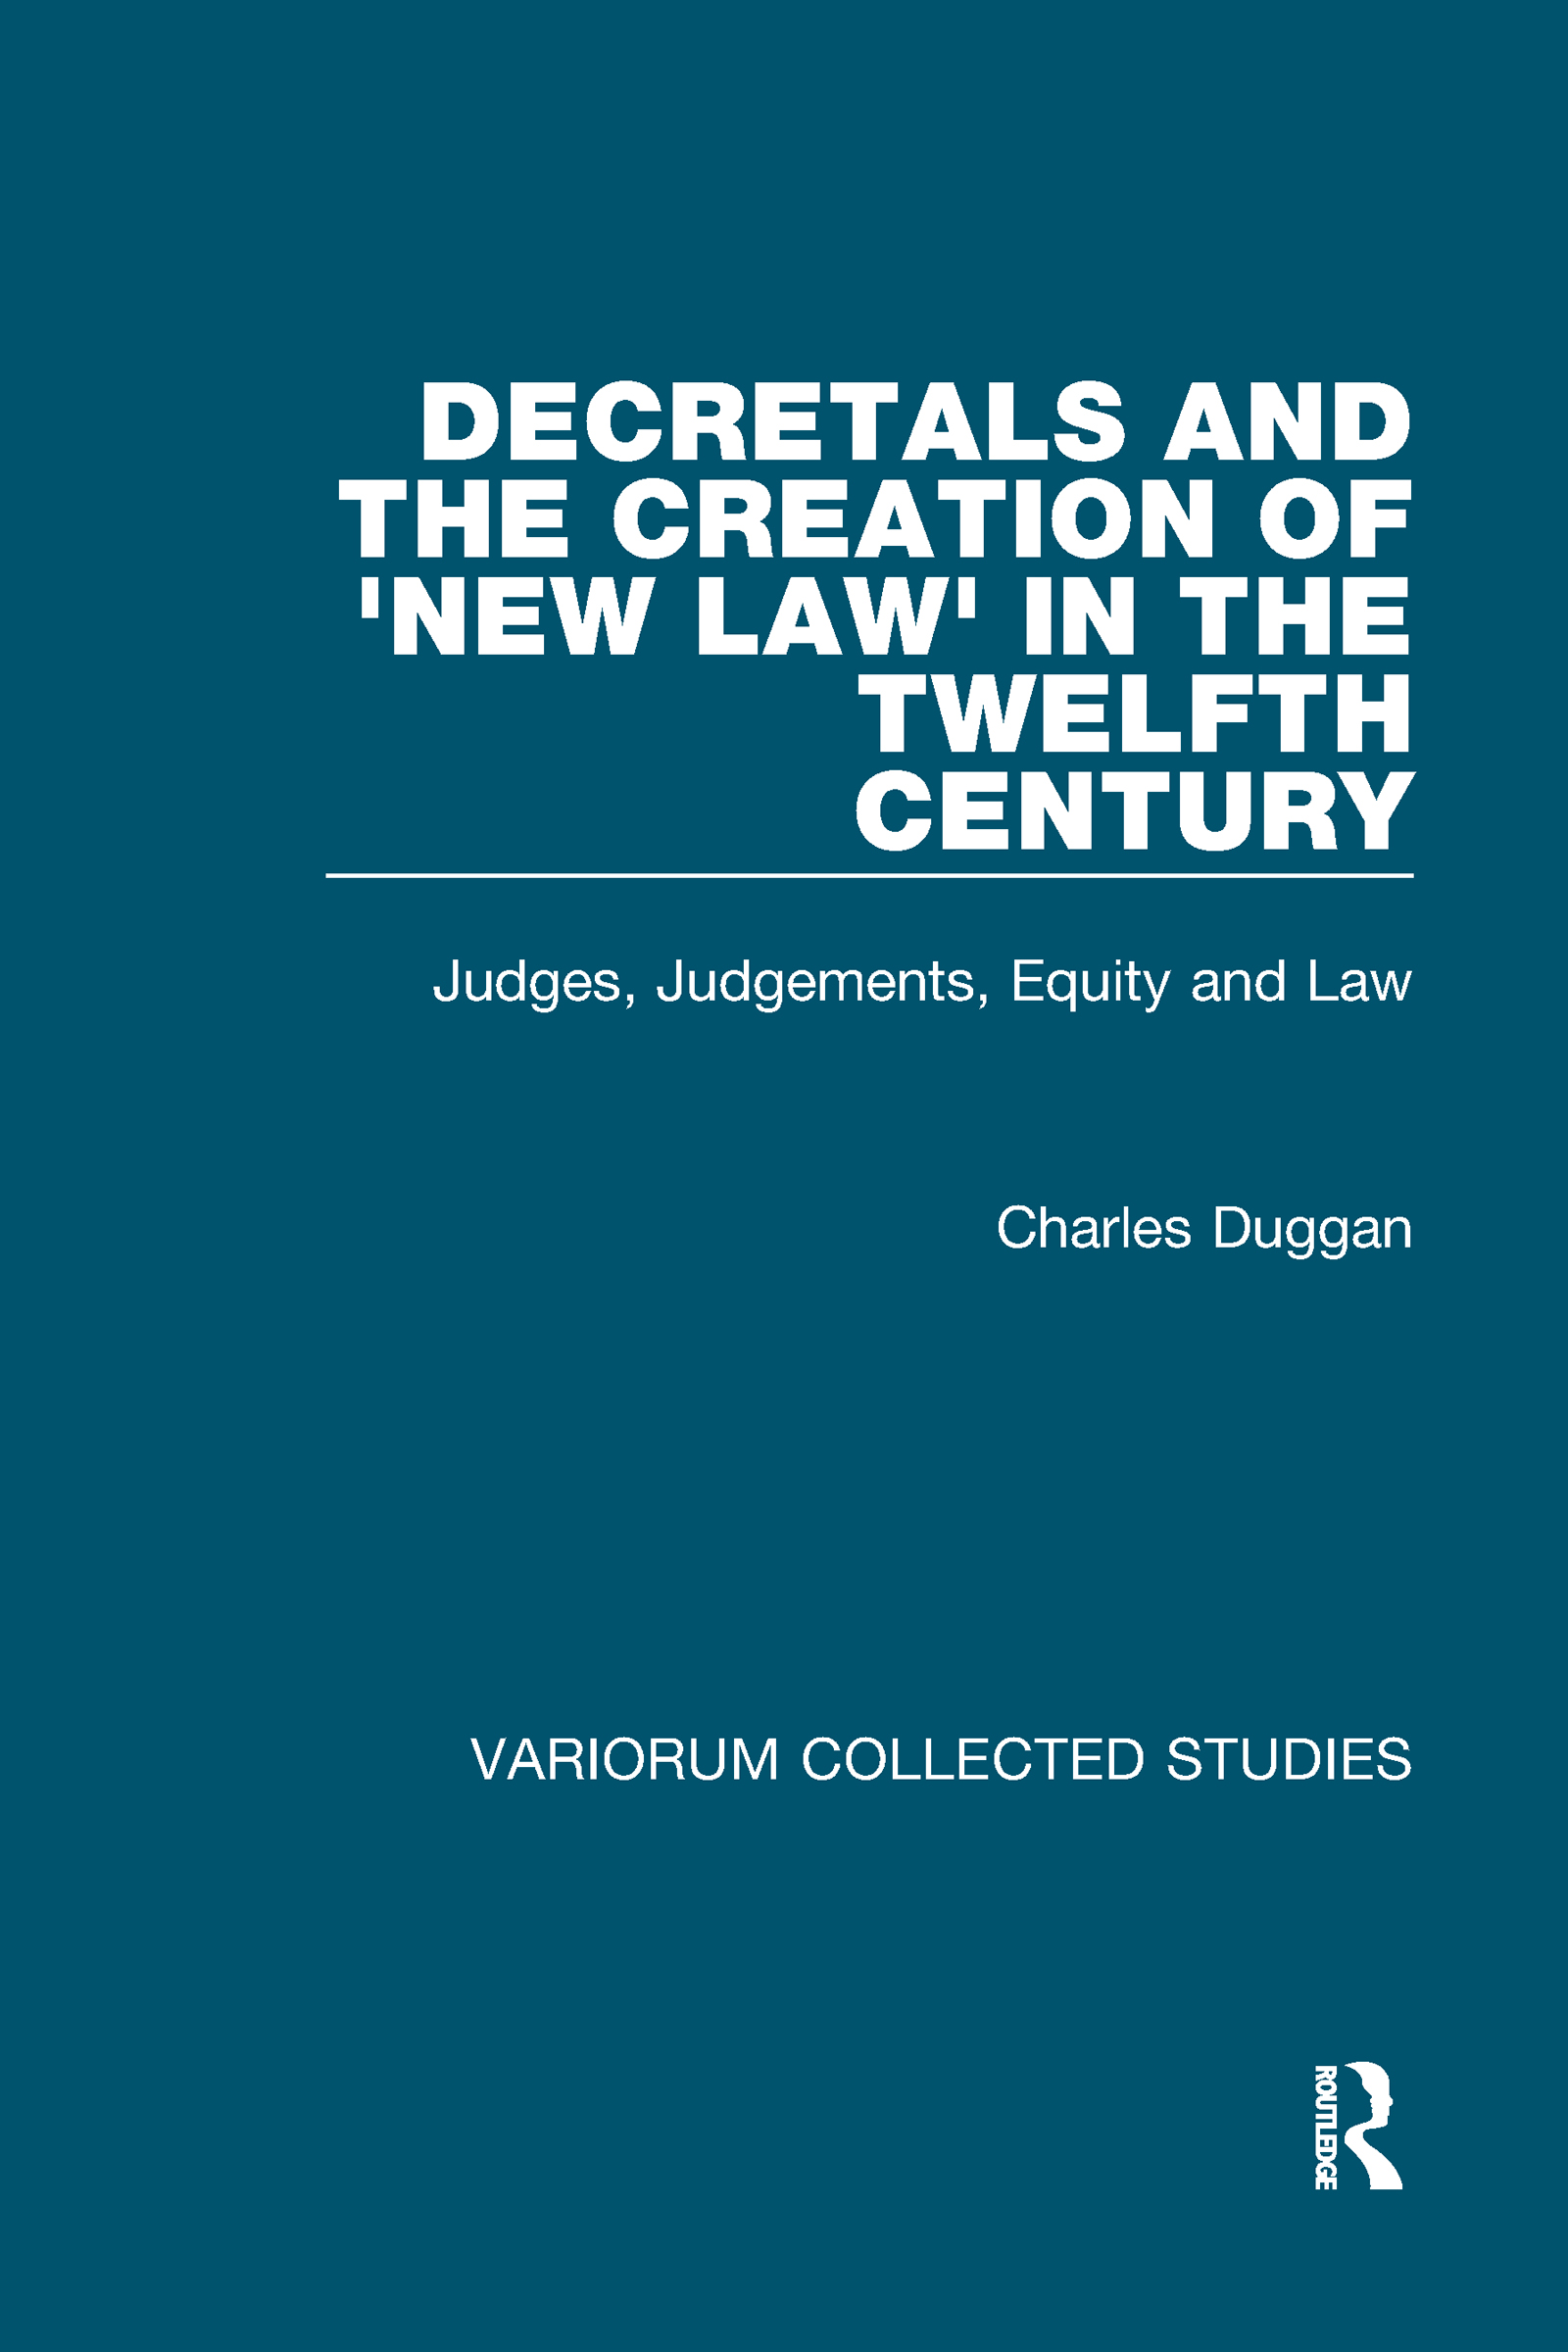 Decretals and the Creation of the 'New Law' in the Twelfth Century: Judges, Judgements, Equity and the Law, 1st Edition (Hardback) book cover